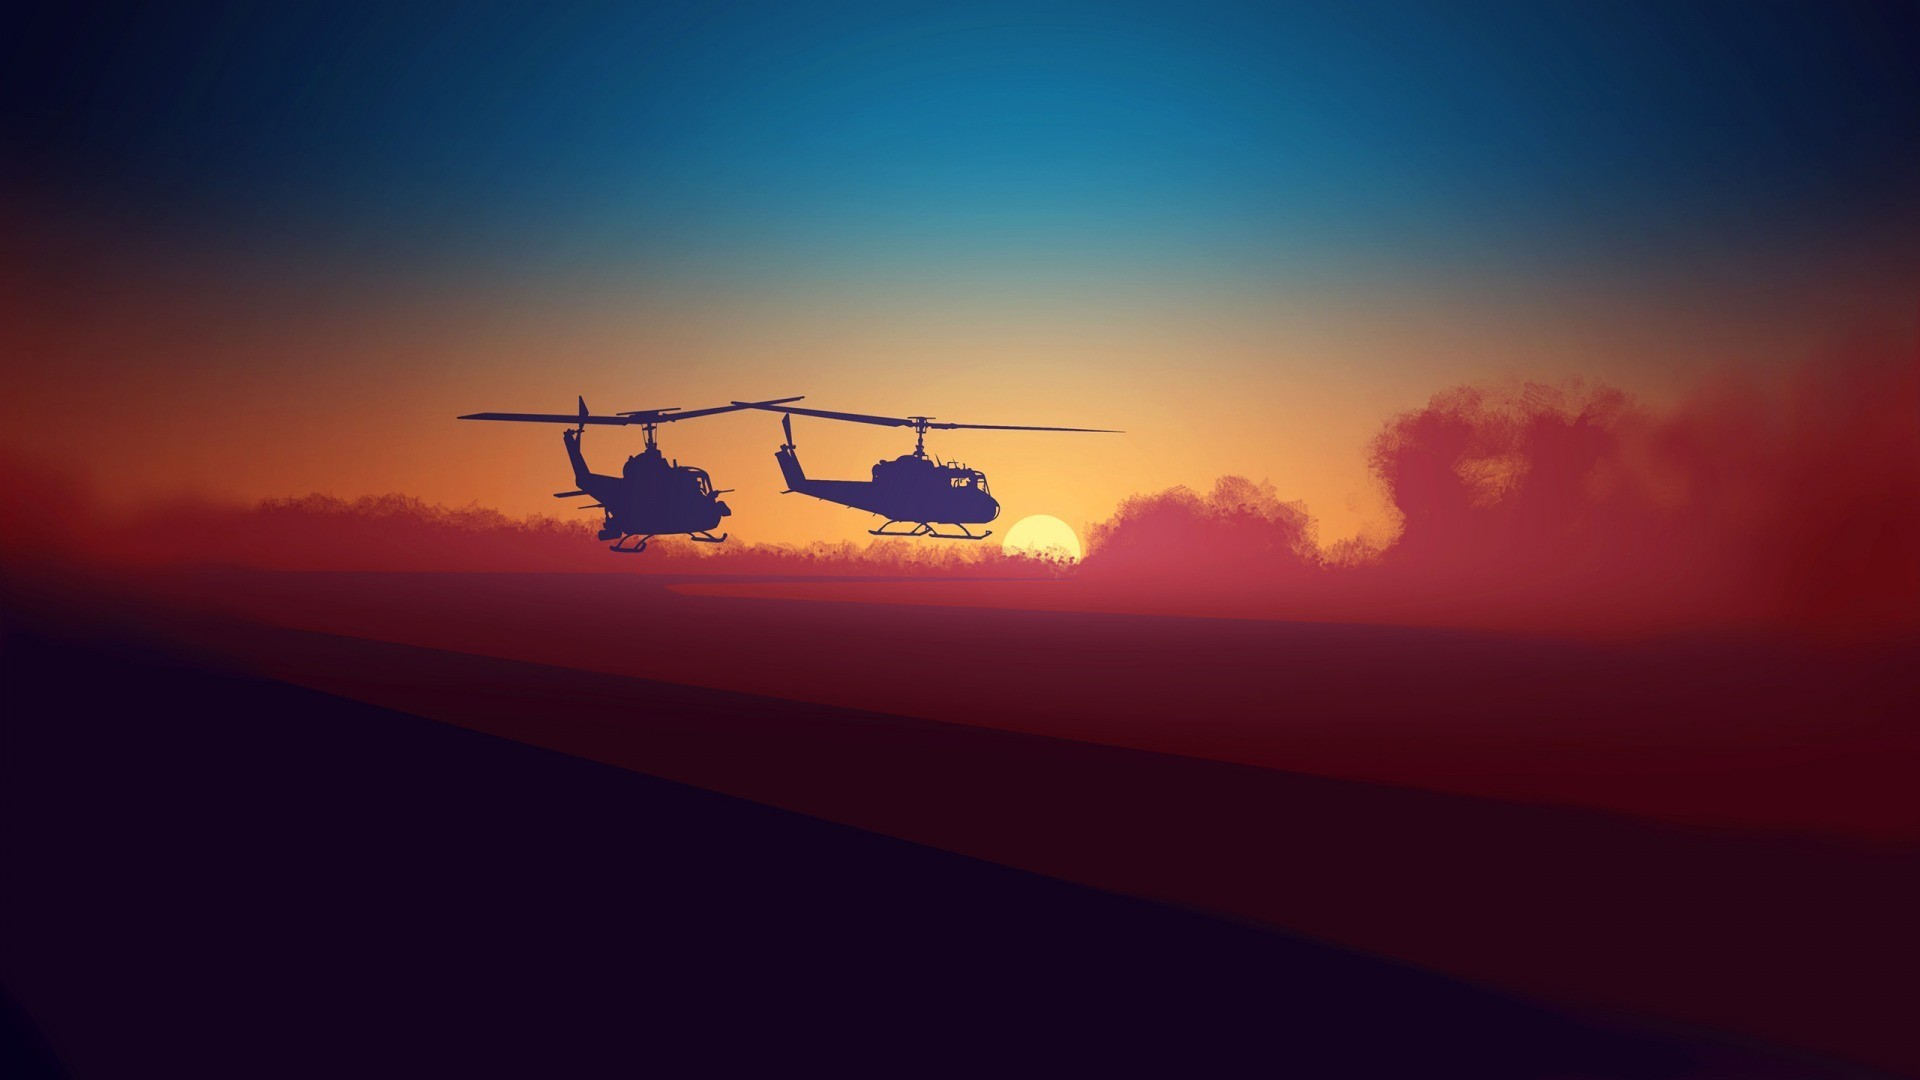 Res: 1920x1080, artwork, Helicopters, Colorful, Sunrise, Sand, UH 1, Huey Helicopter  Wallpapers HD / Desktop and Mobile Backgrounds